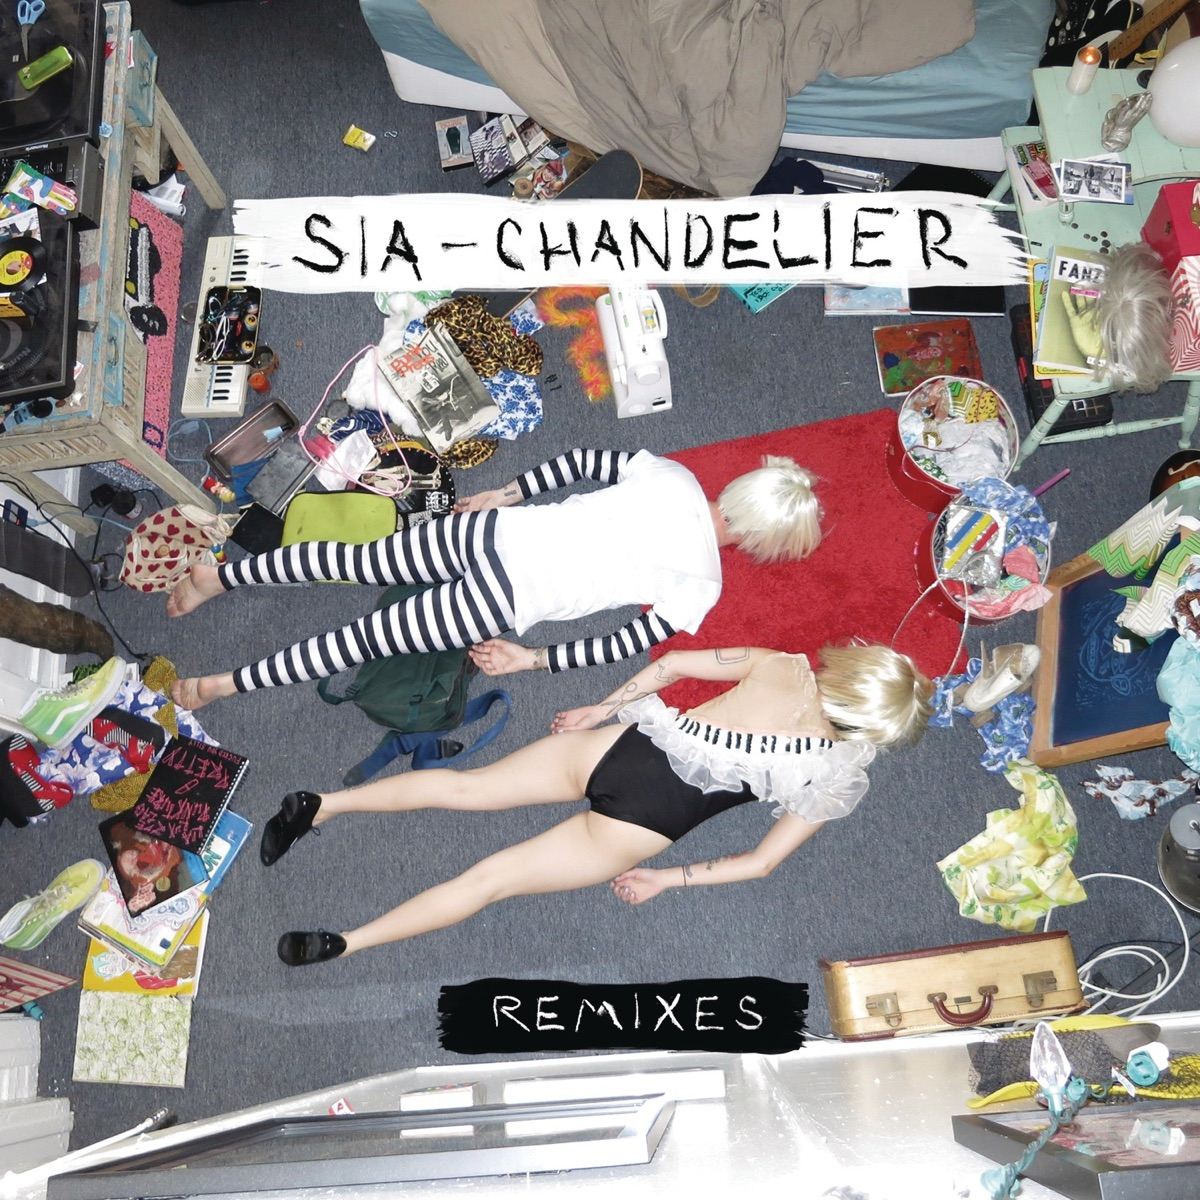 Chandelier Remixes - EP Sia CD cover